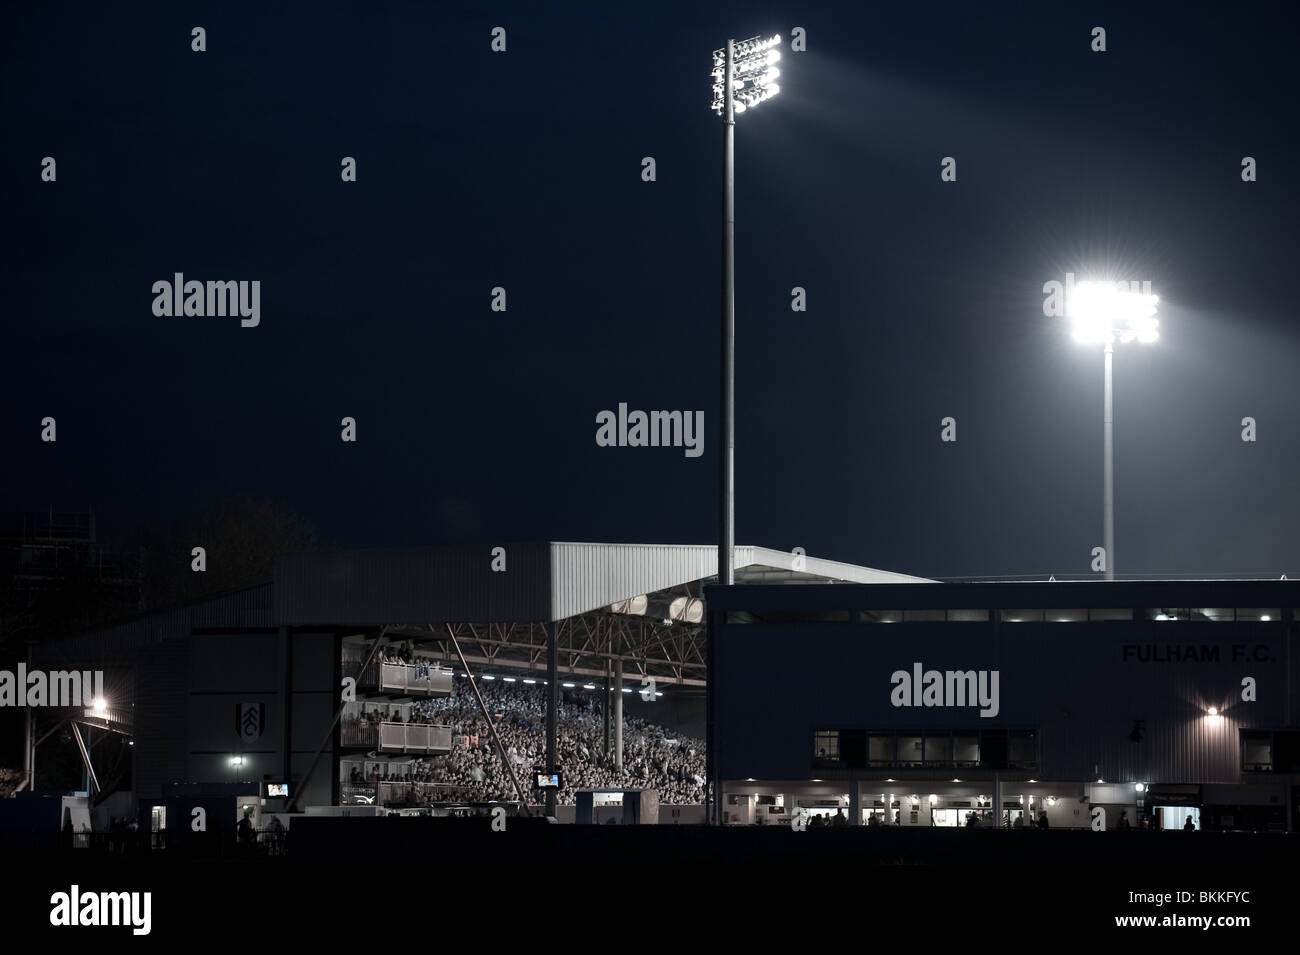 A section of the Fulham FC football ground, Craven Cottage, during an evening match on the banks of London's - Stock Image